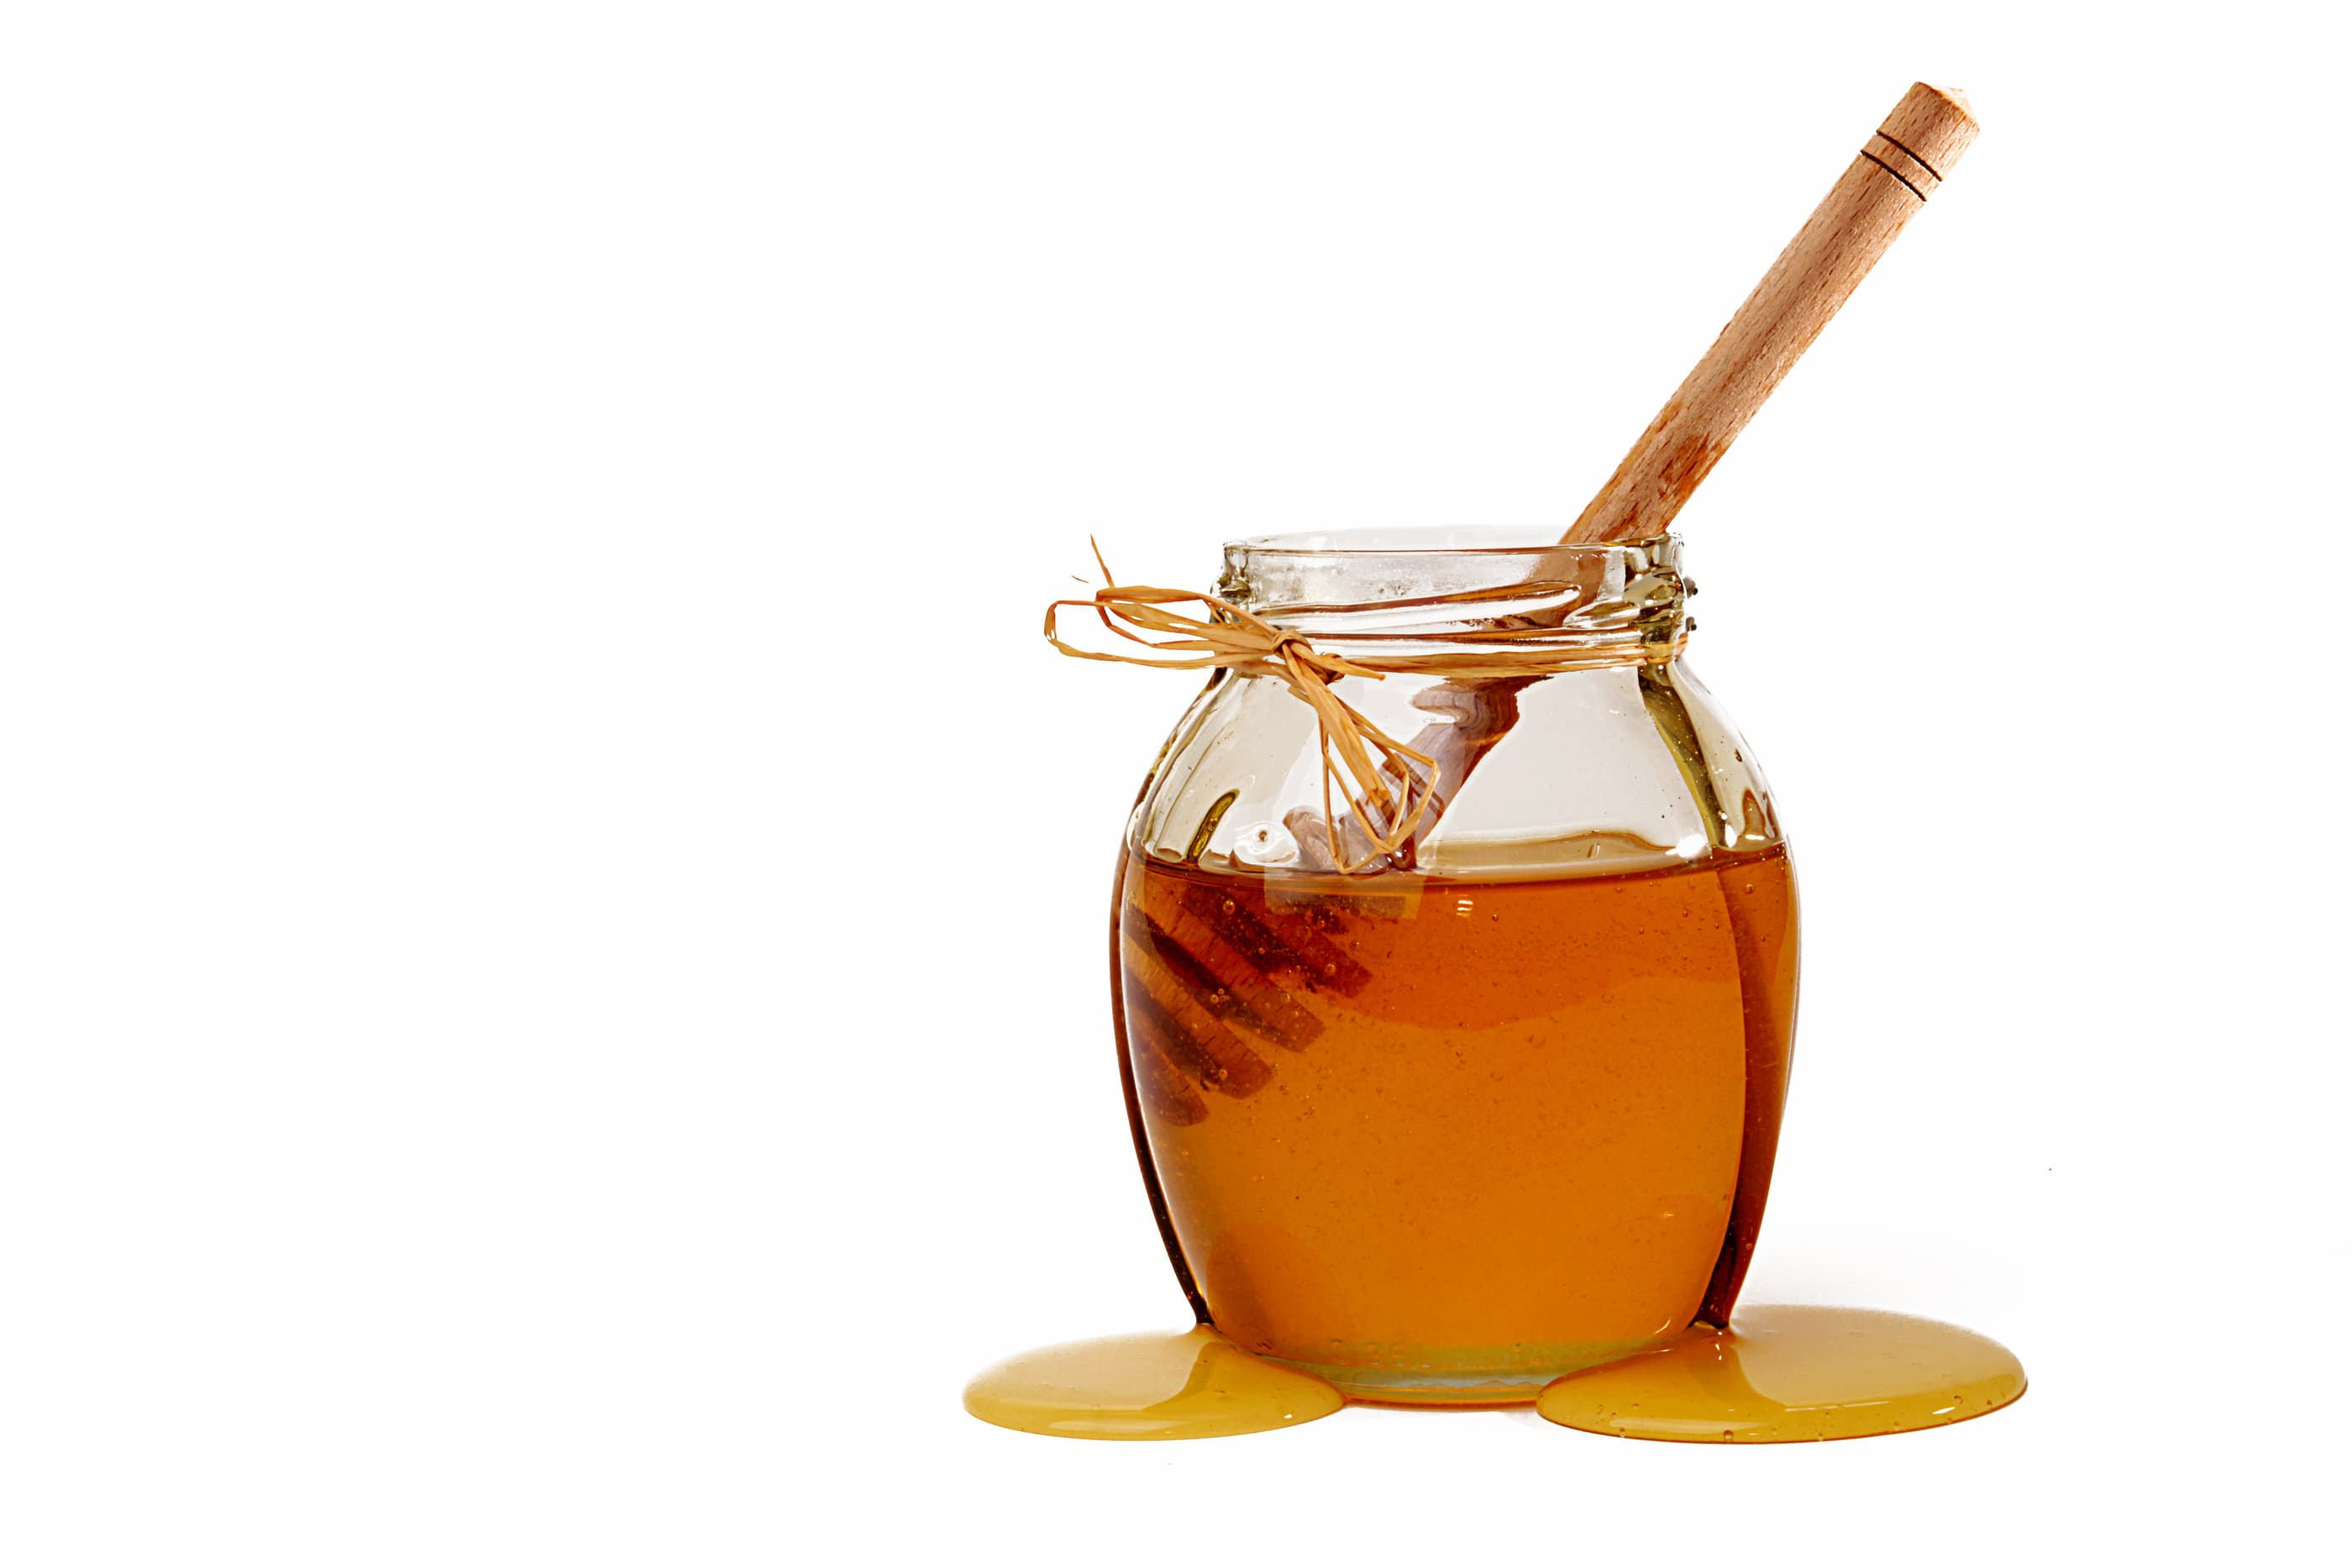 Delicious sweet honey in glass jar. Honey and dipper in jar on white background. Spread honey next to jar. Natural organic food concept